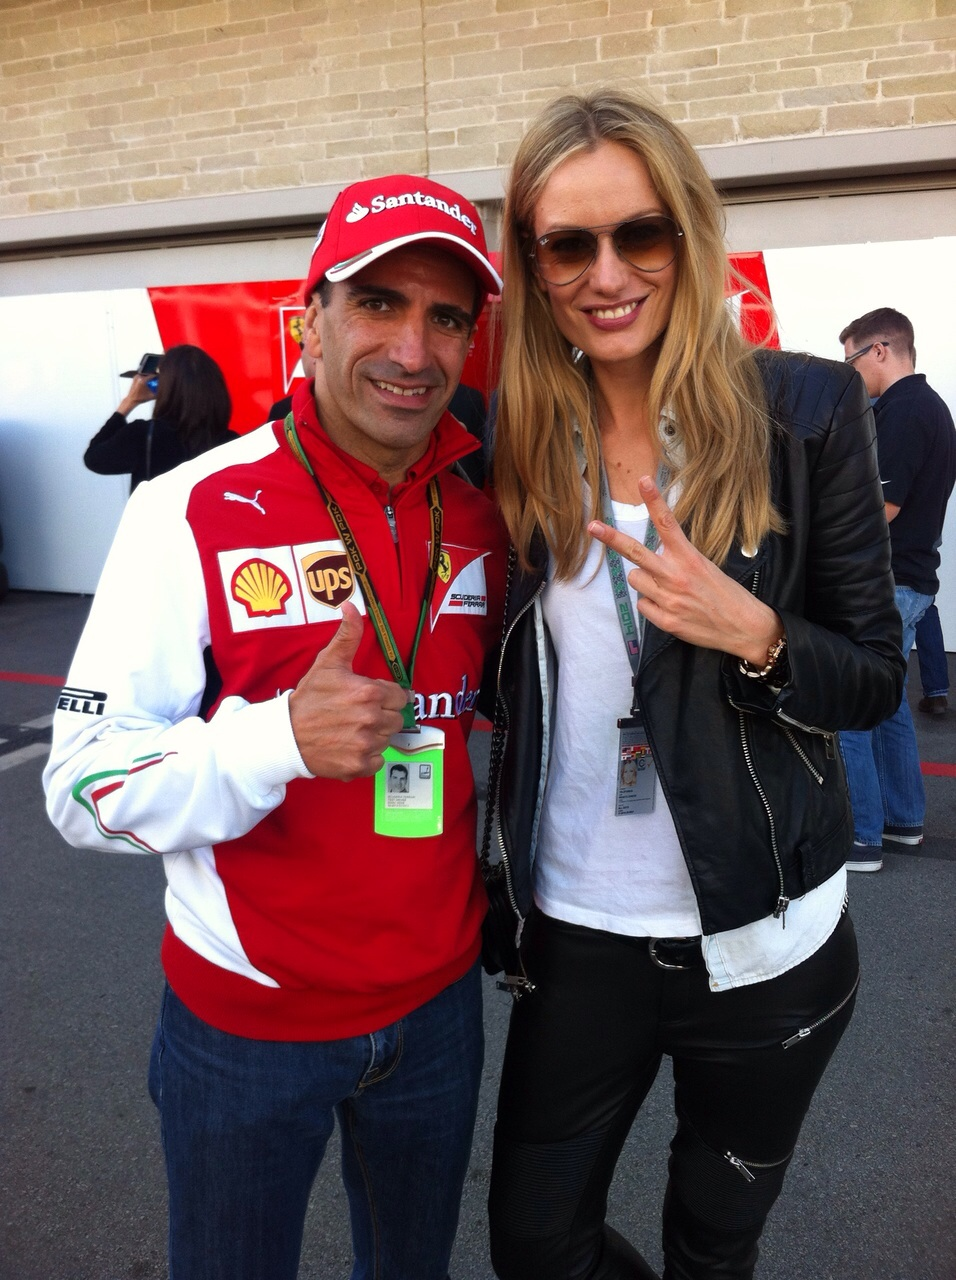 With former F1 Pilot Marc Gené. See you in Barcelona Marc!